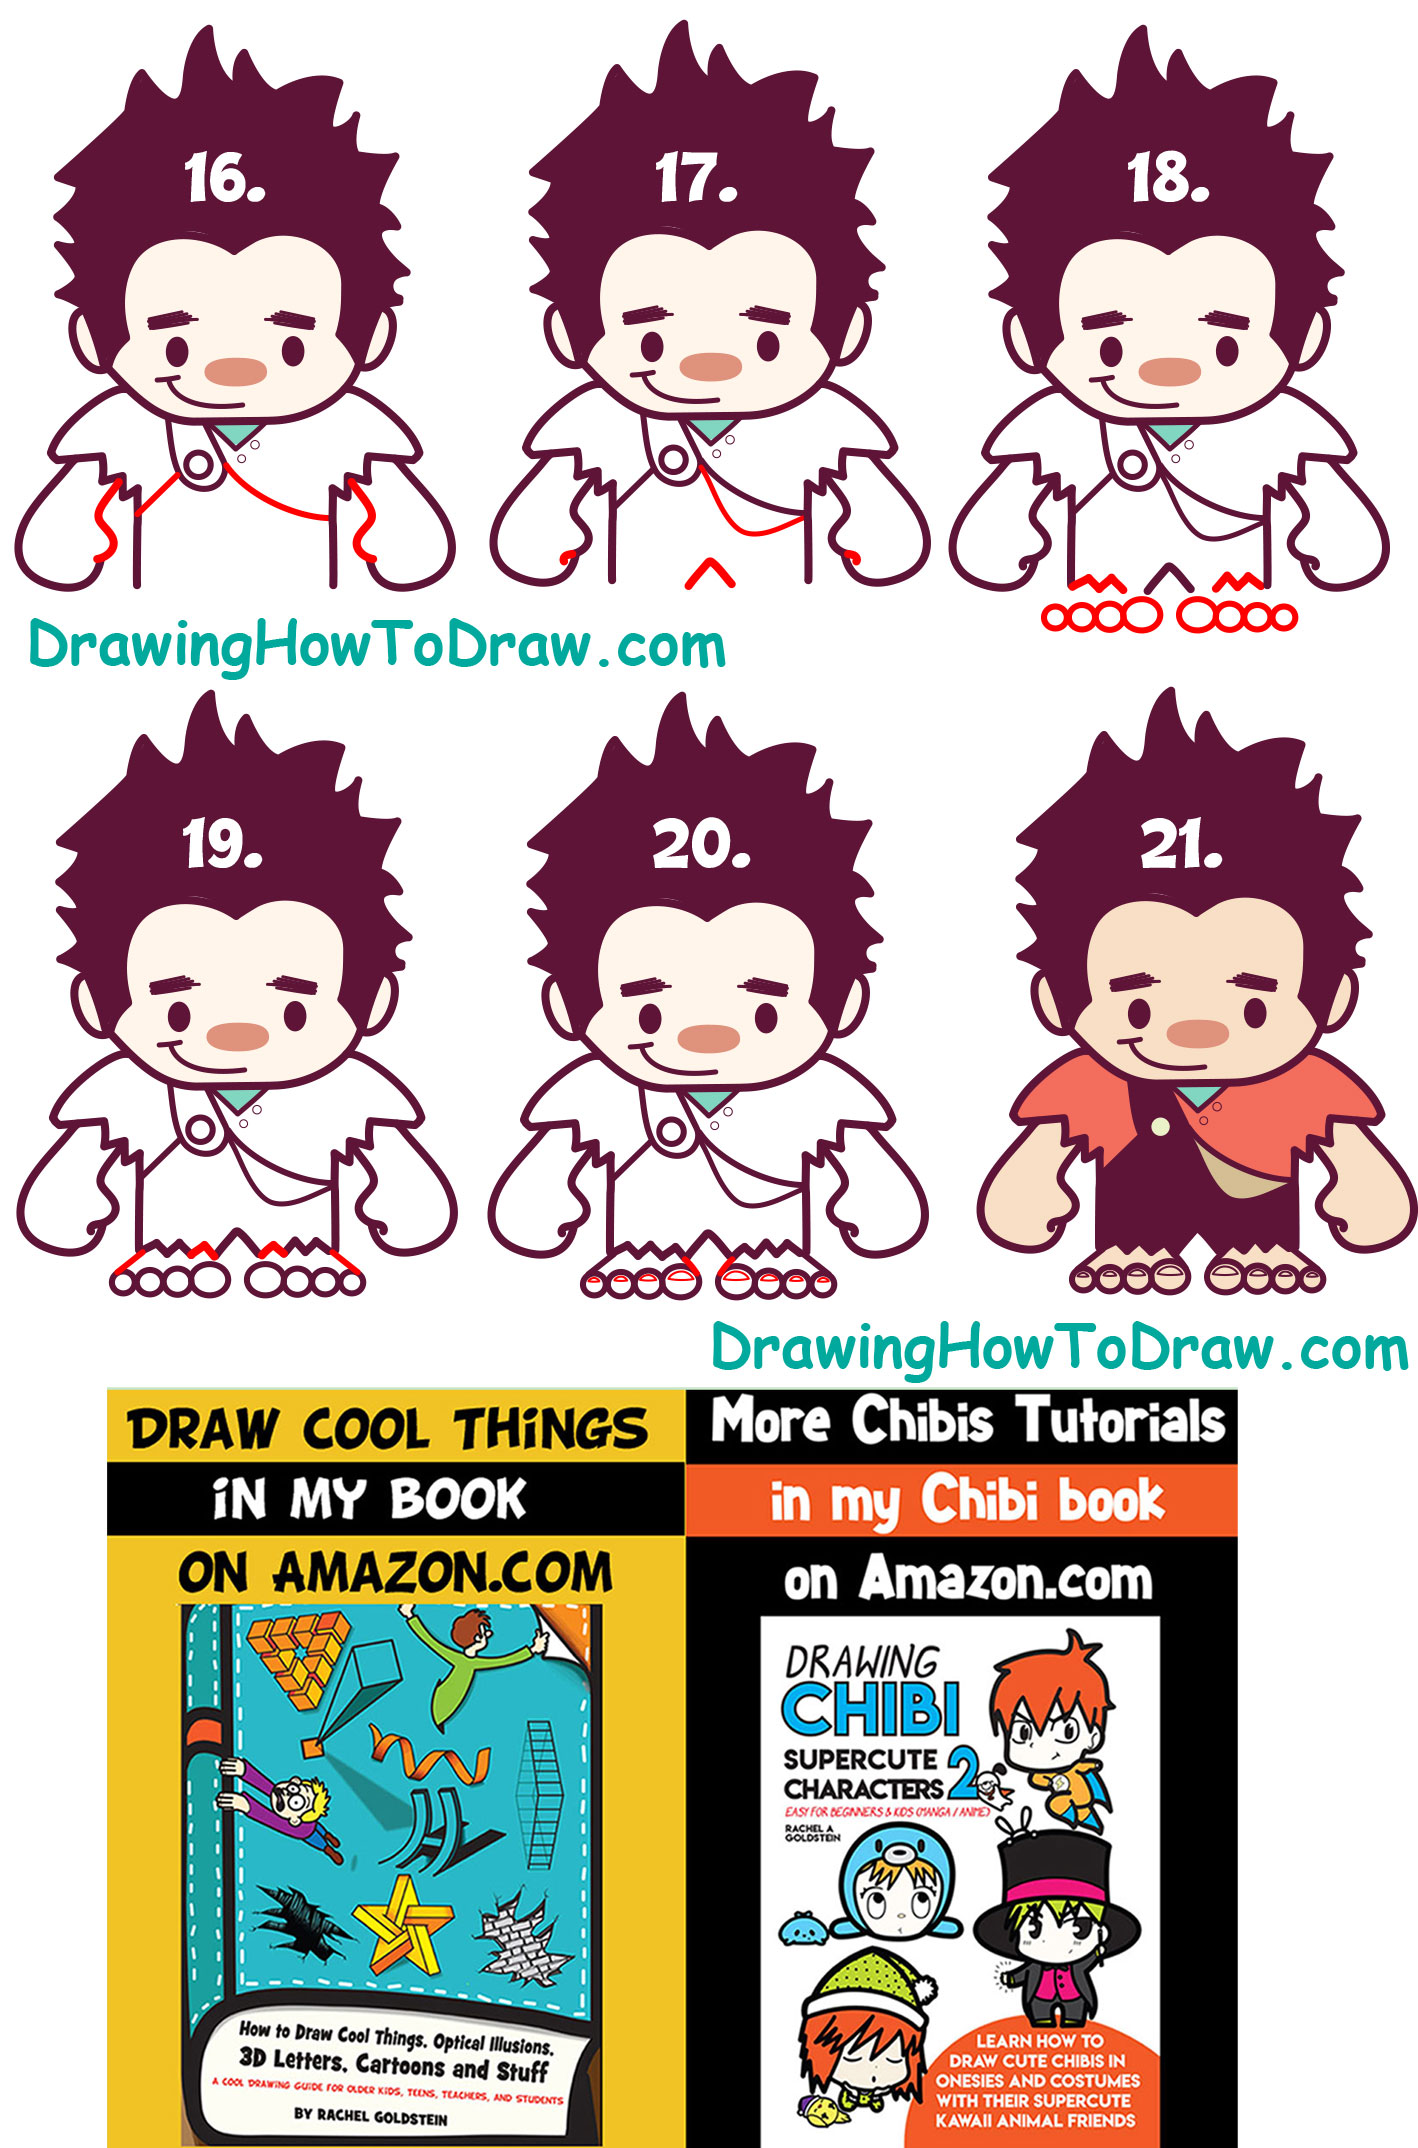 Learn How to Draw Cute Kawaii Chibi Ralph from Wreck it Ralph - Simple Step by Step Tutorial for Kids